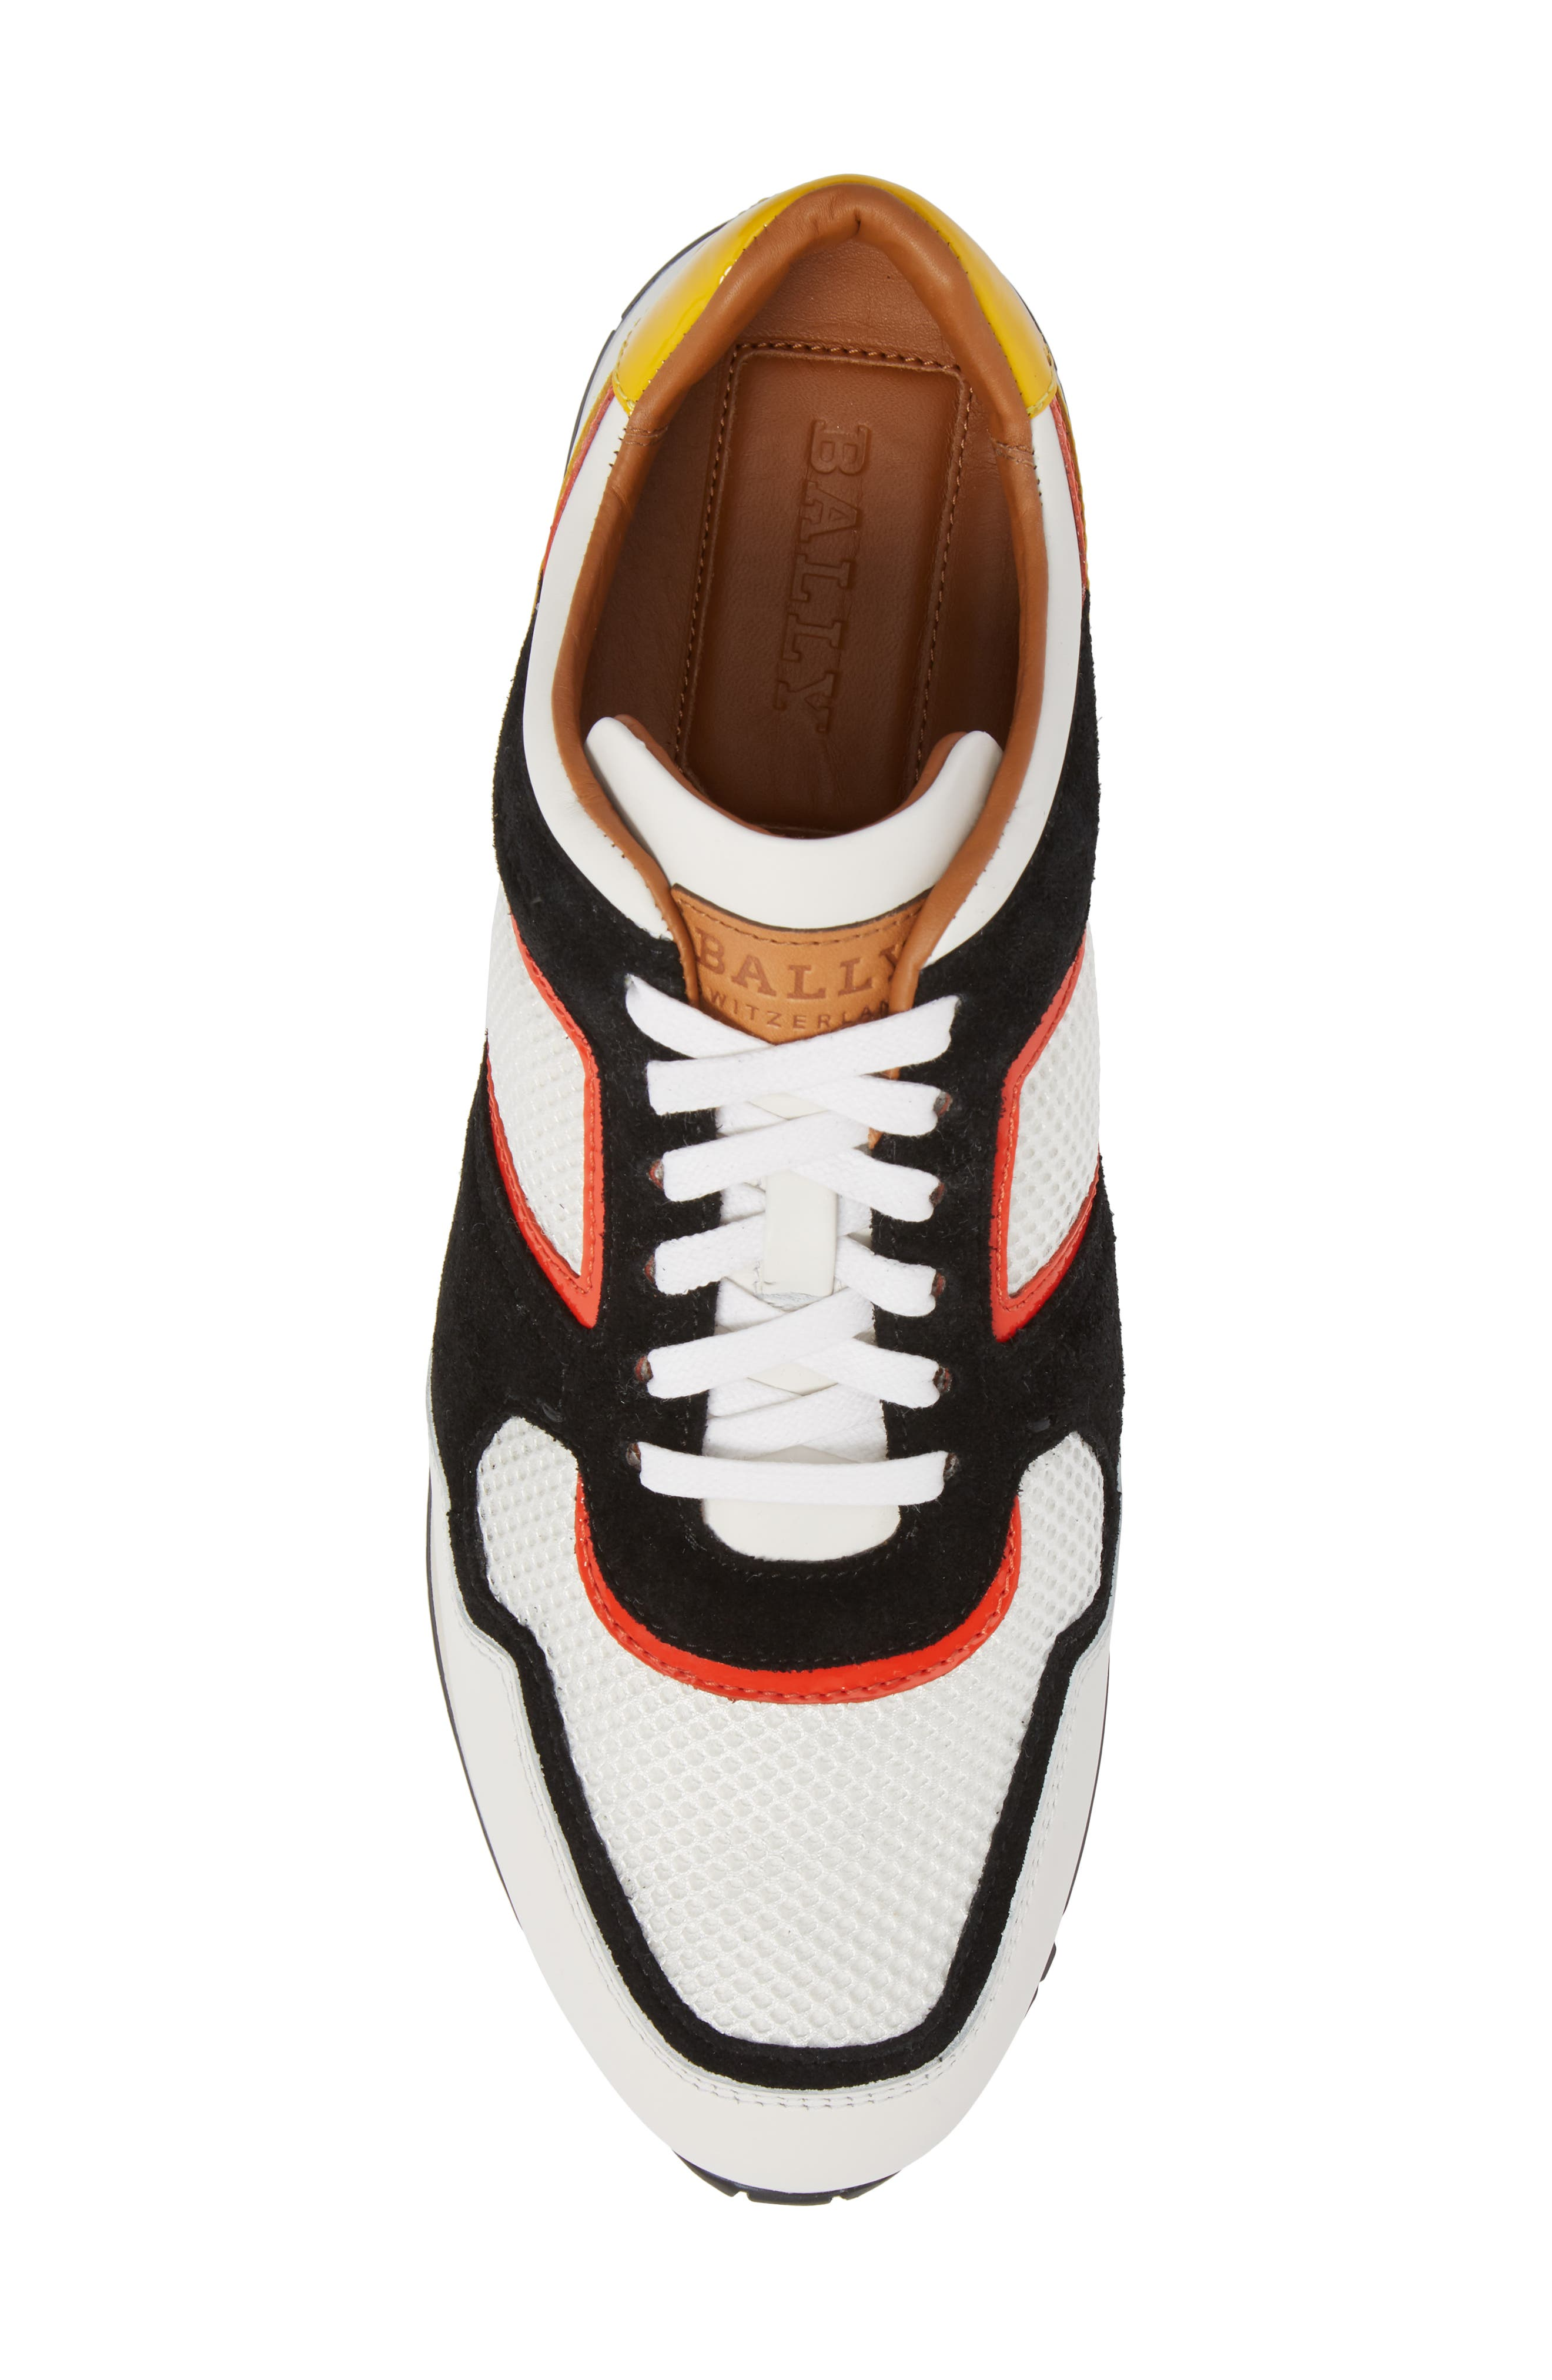 Astreo Low Top Sneaker,                             Alternate thumbnail 5, color,                             109